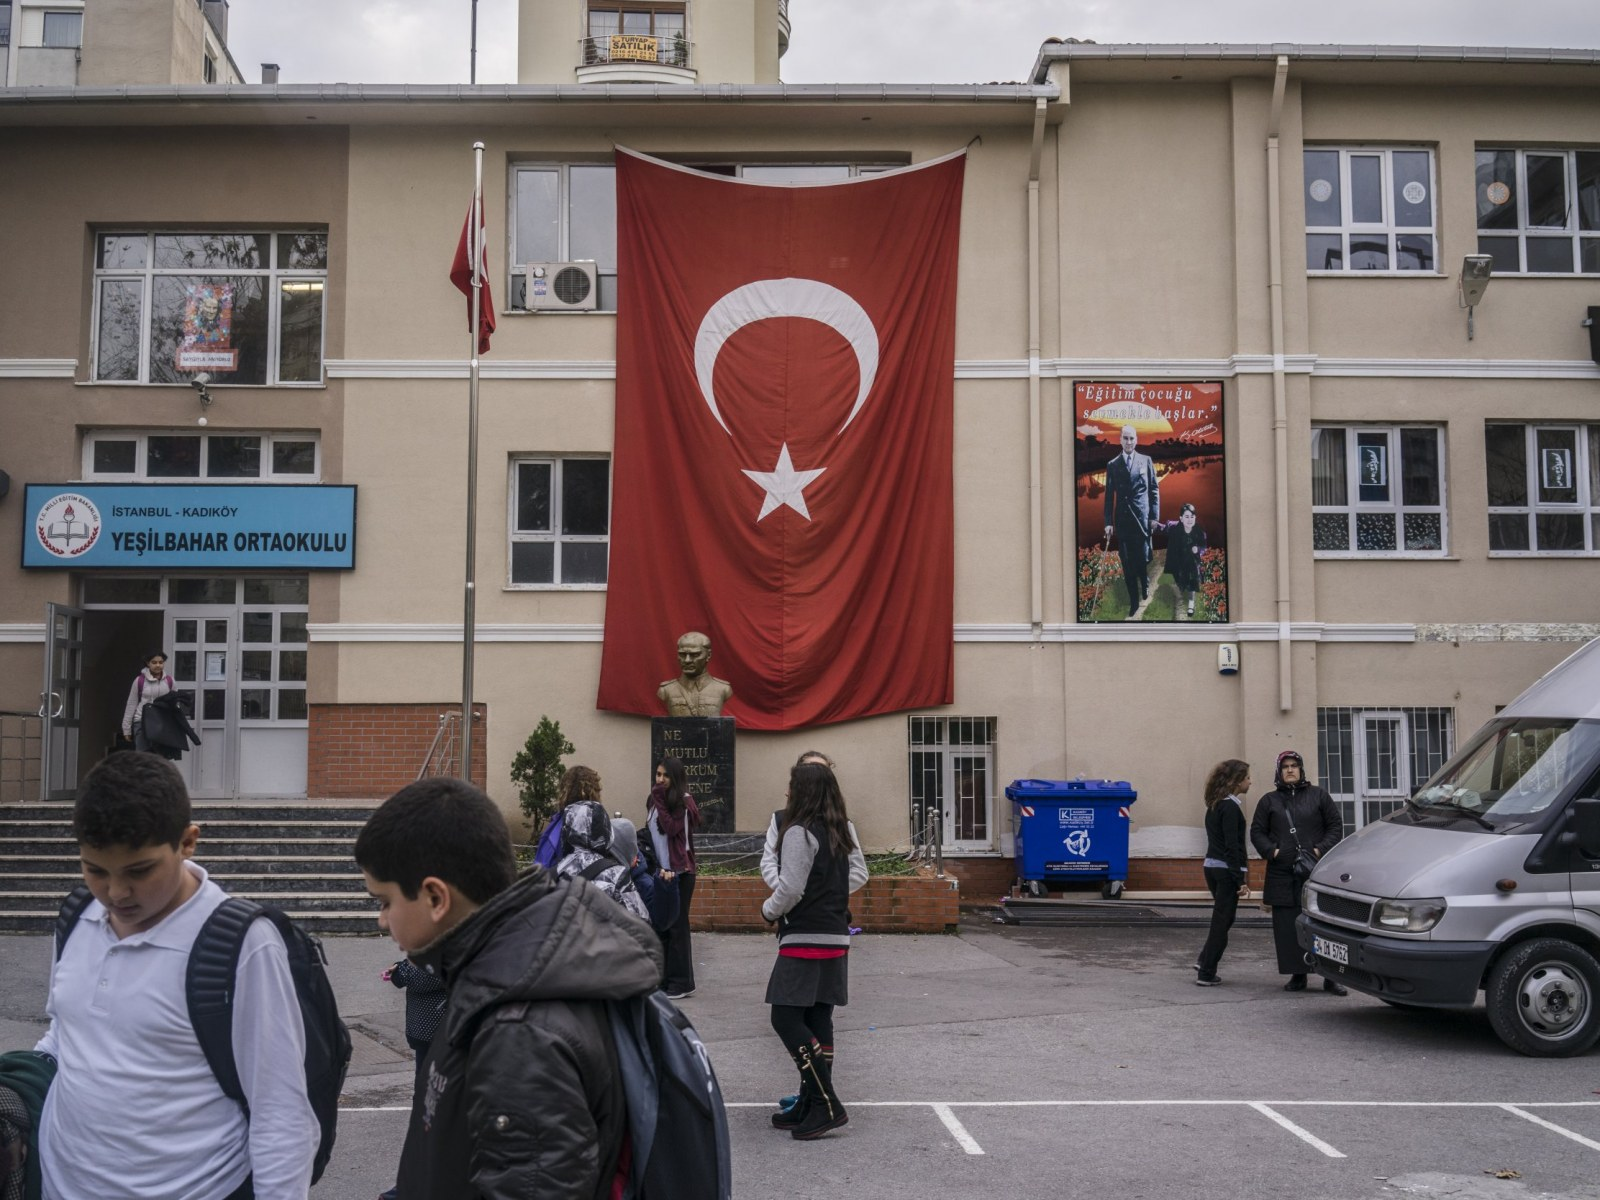 Erdogan Launches Sunni Islamist Revival in Turkish Schools